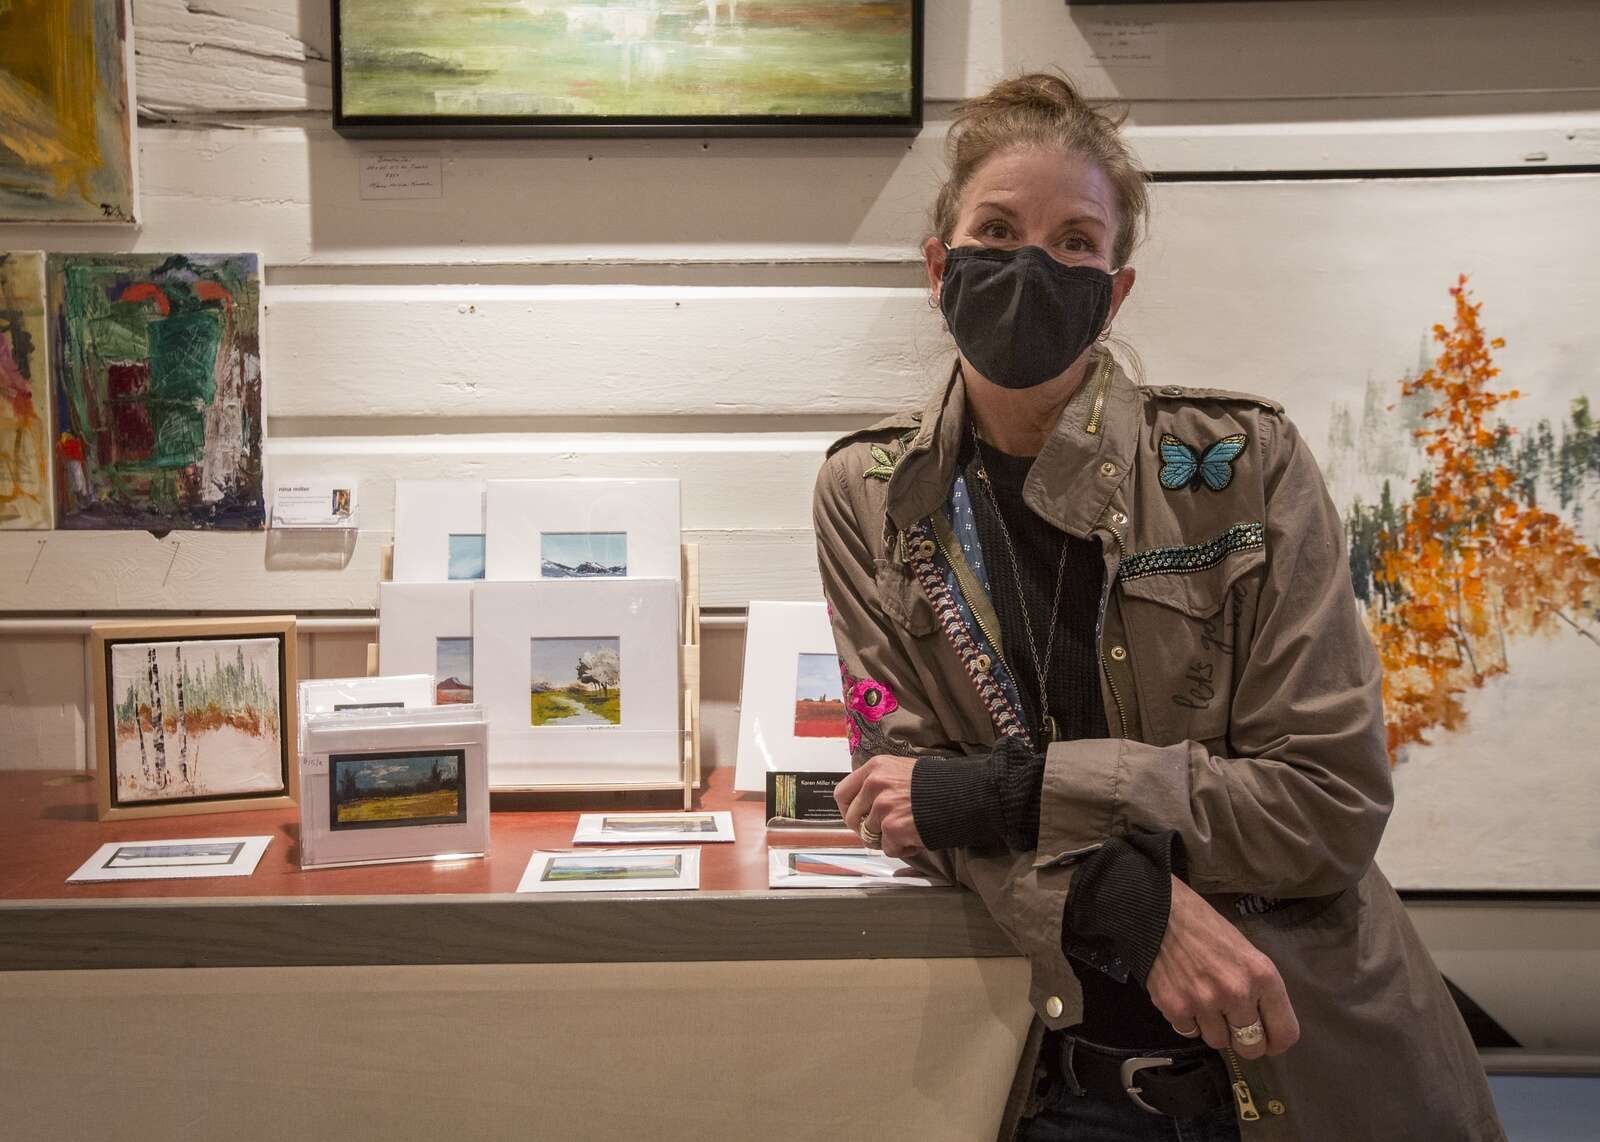 Park City-based artist 'getting unstuck' after struggling with creativity during the pandemic